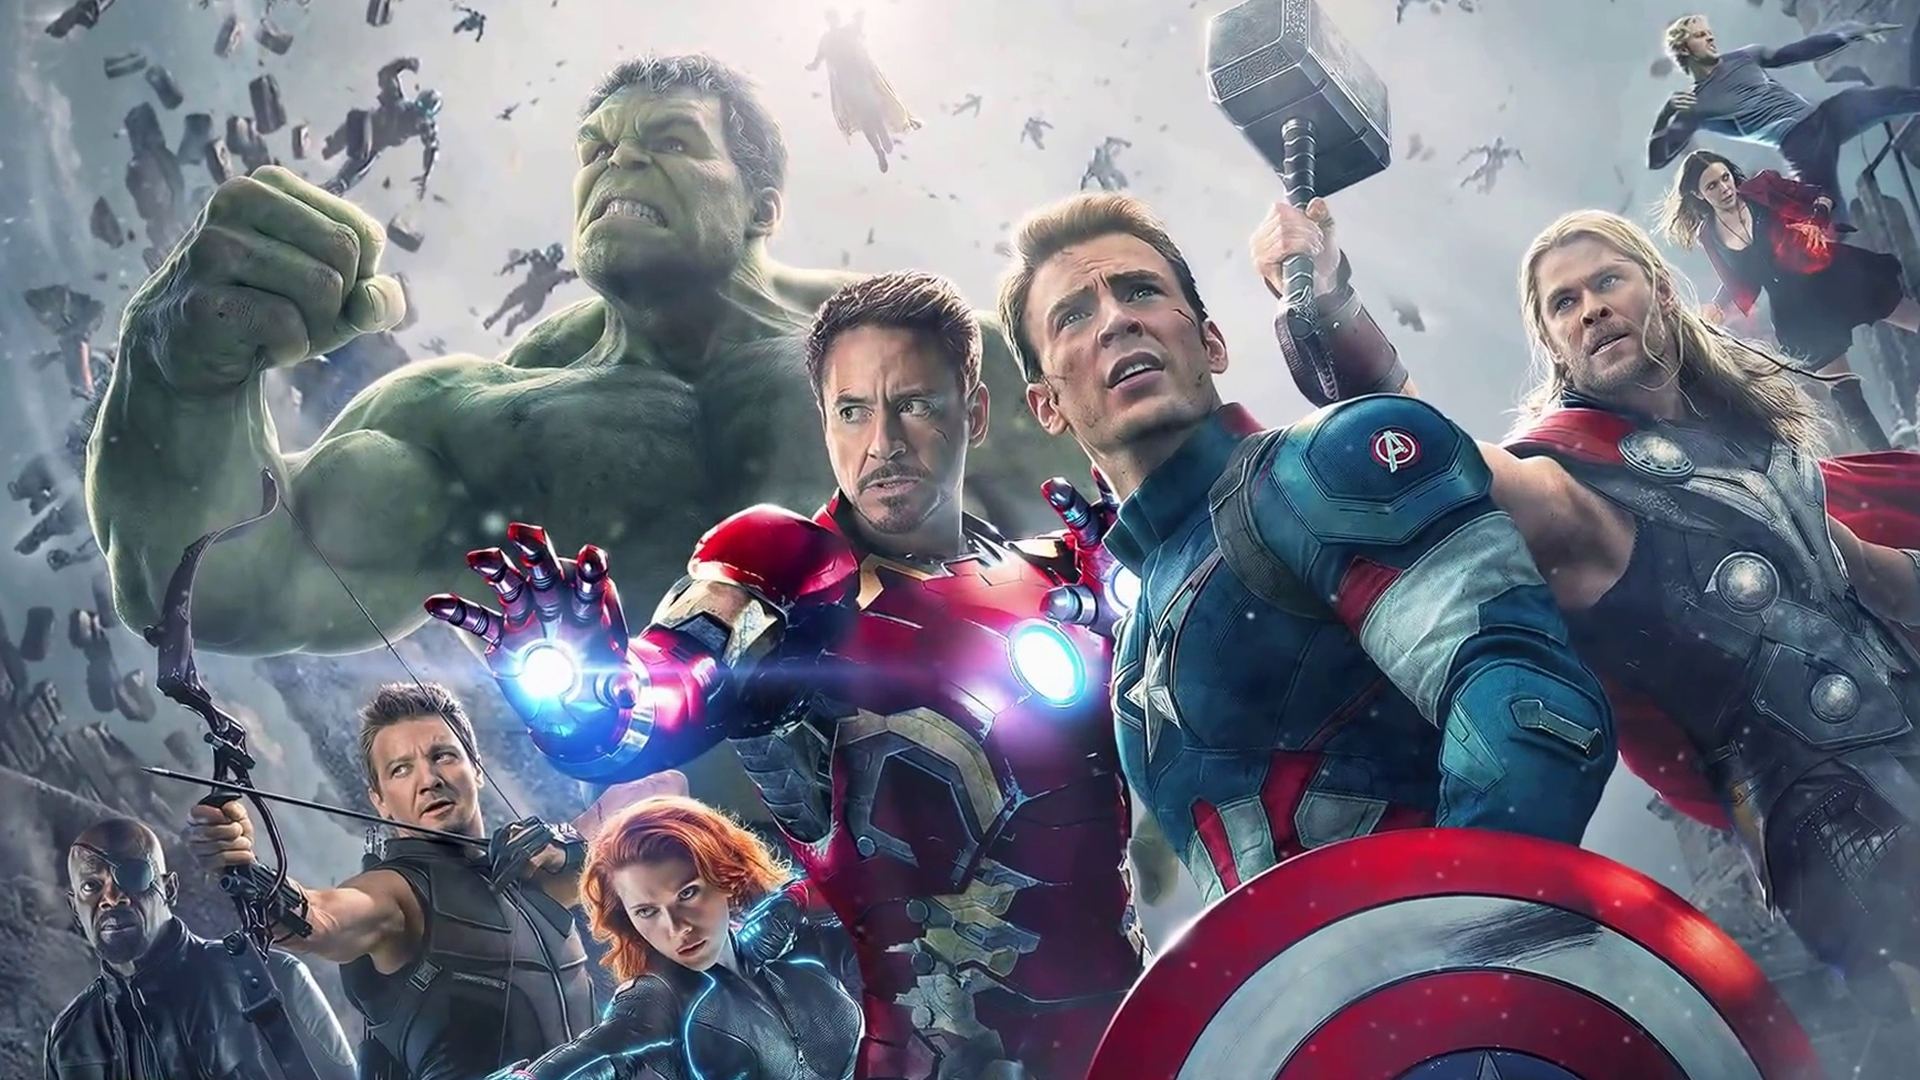 avengers: age of ultron wallpaper 1920x1080sachso74 on deviantart